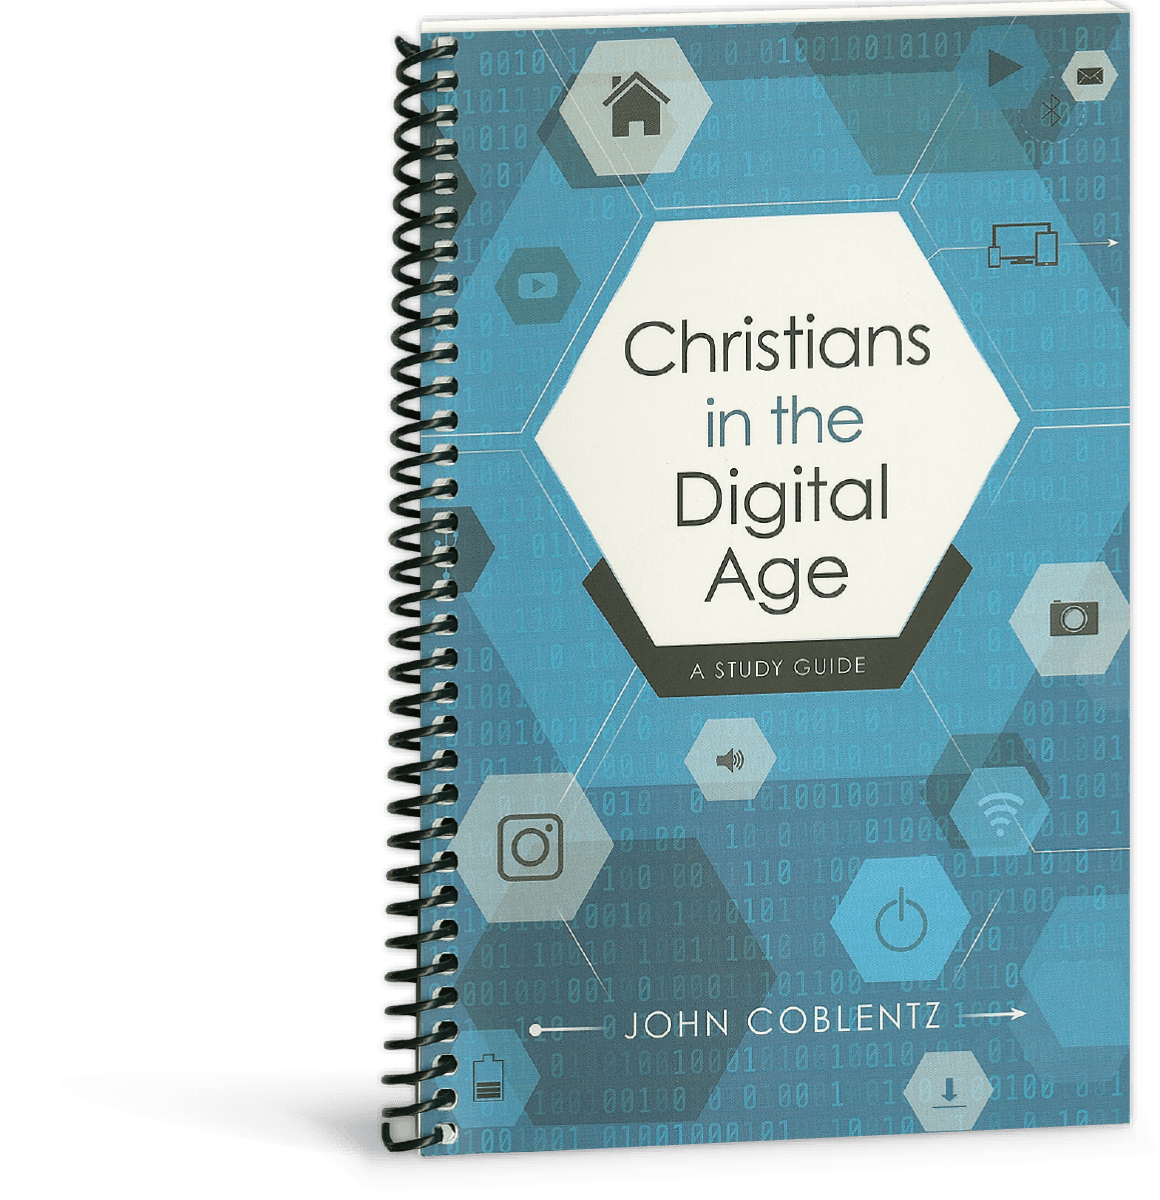 Christians in the Digital Age